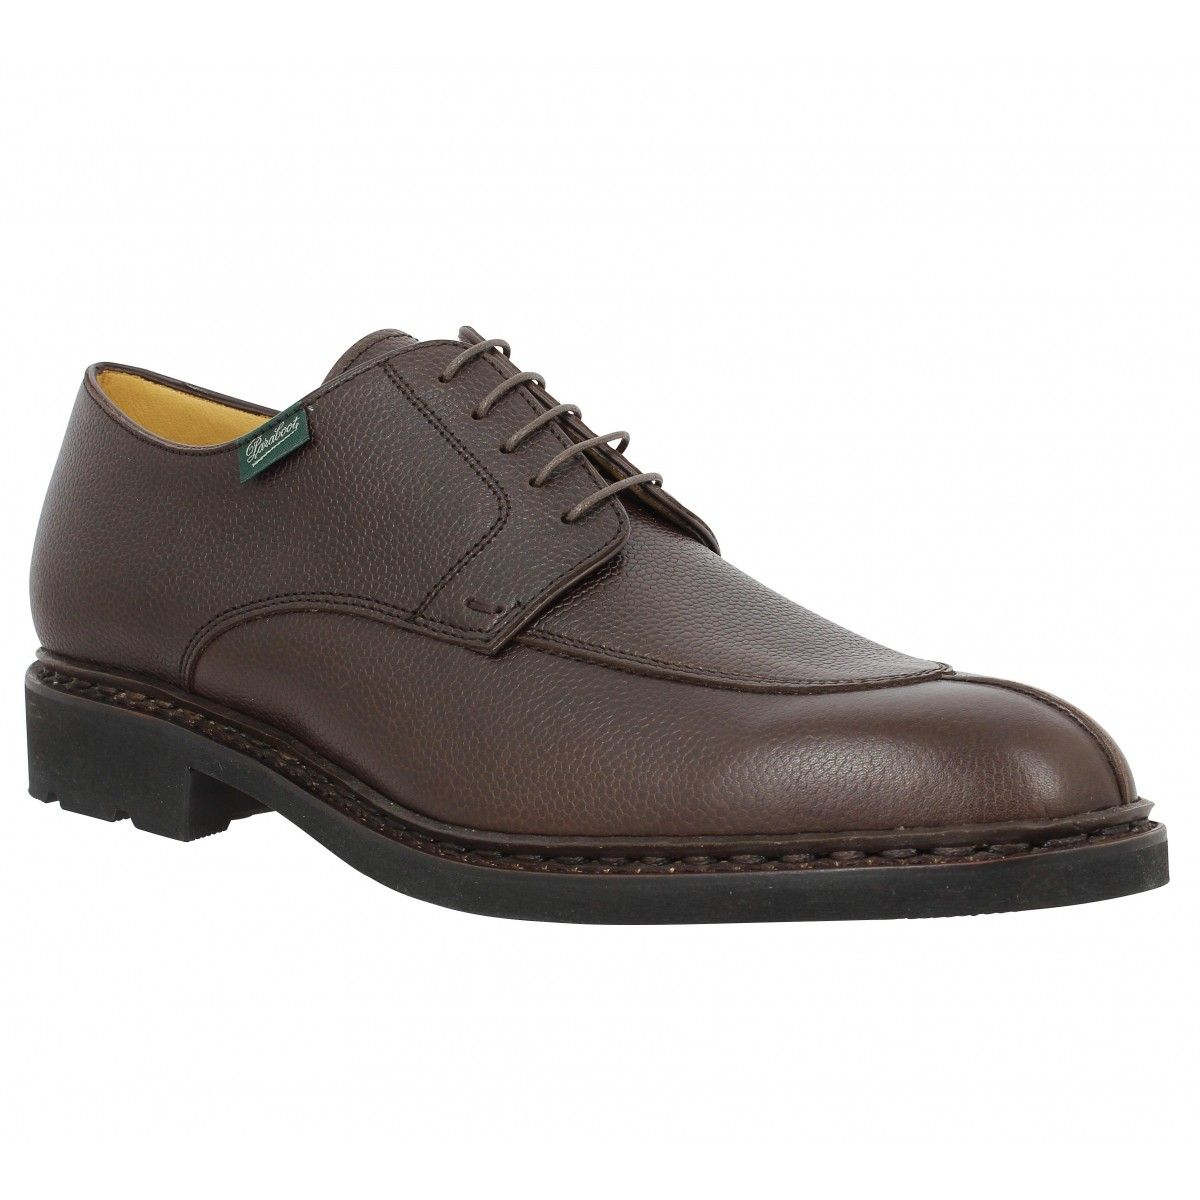 9c71c49f25e8 CHAUSSURES Paraboot - tritOO Mode